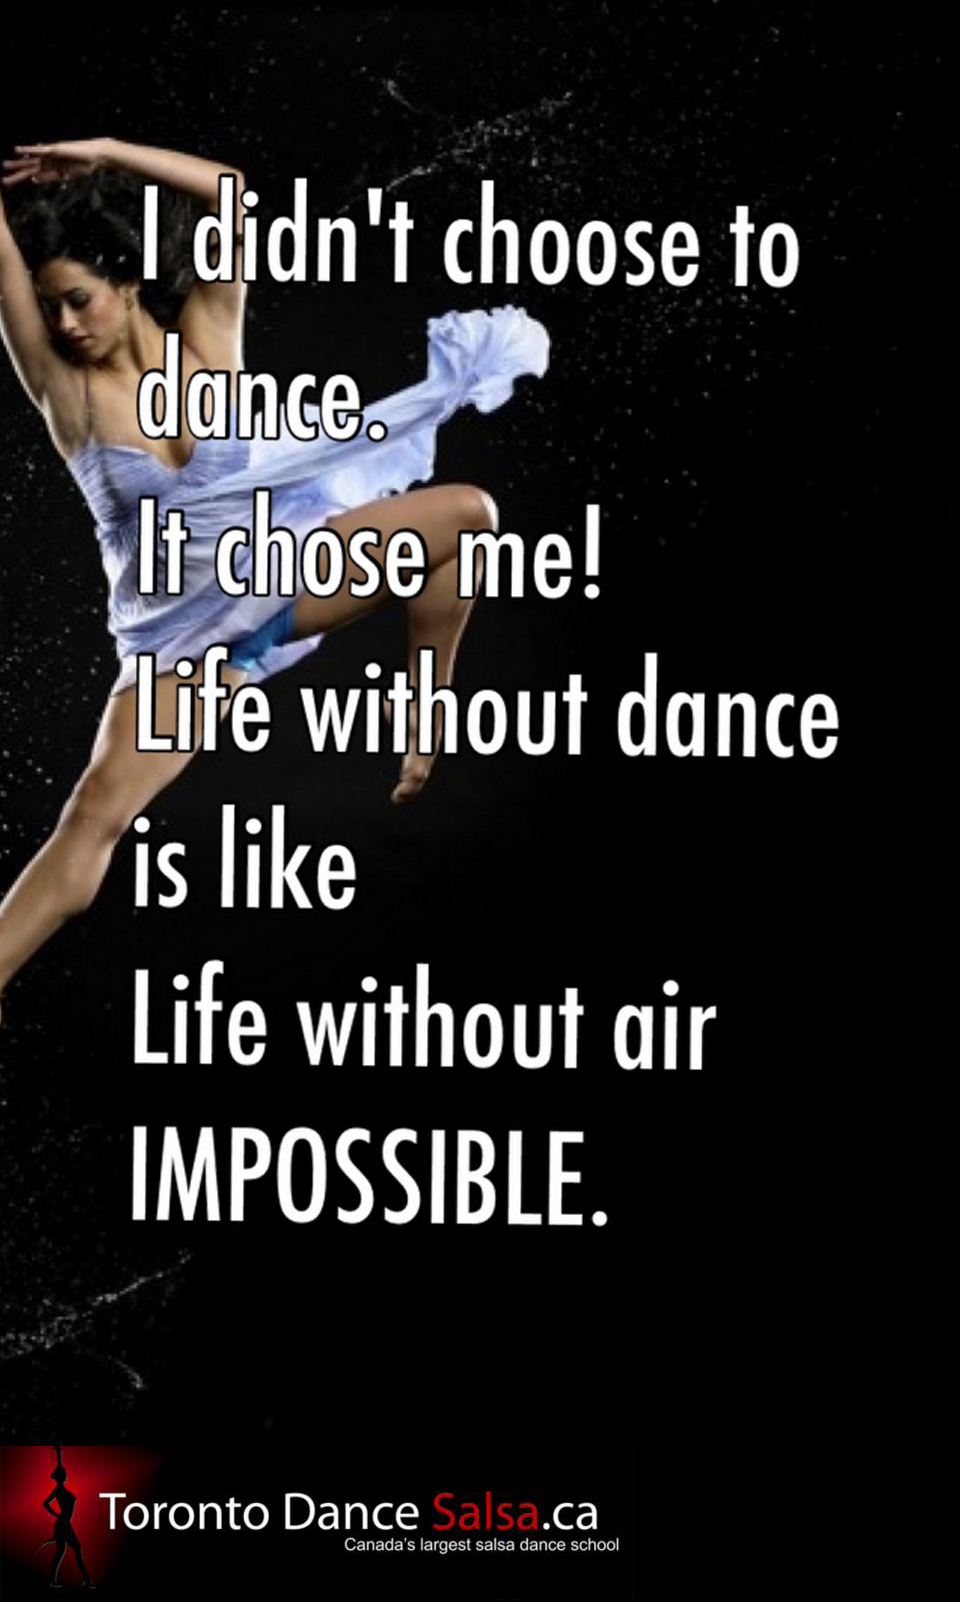 Life without dance is like life without air.